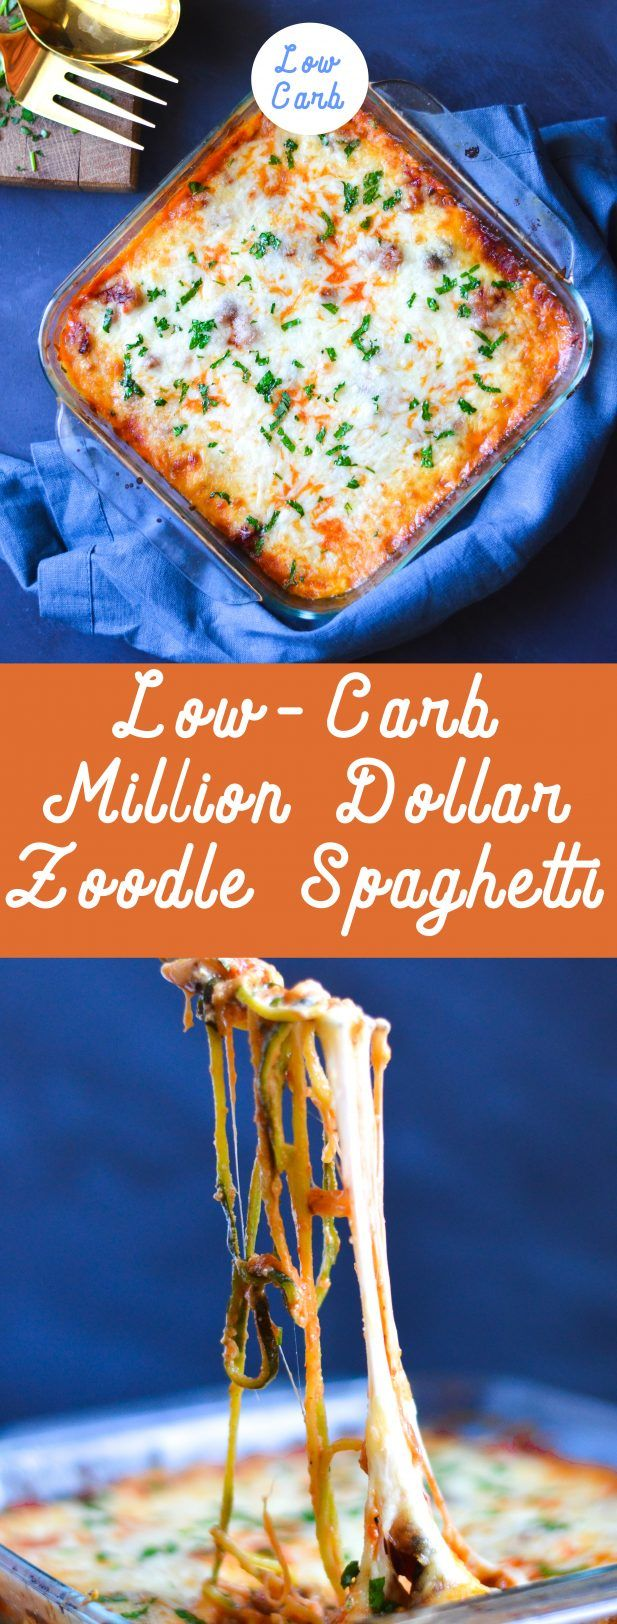 You WILL NOT miss the carbs in this Million Dollar Zoodle Spaghetti. Get ready for your new obsession. via @mymoderncookery